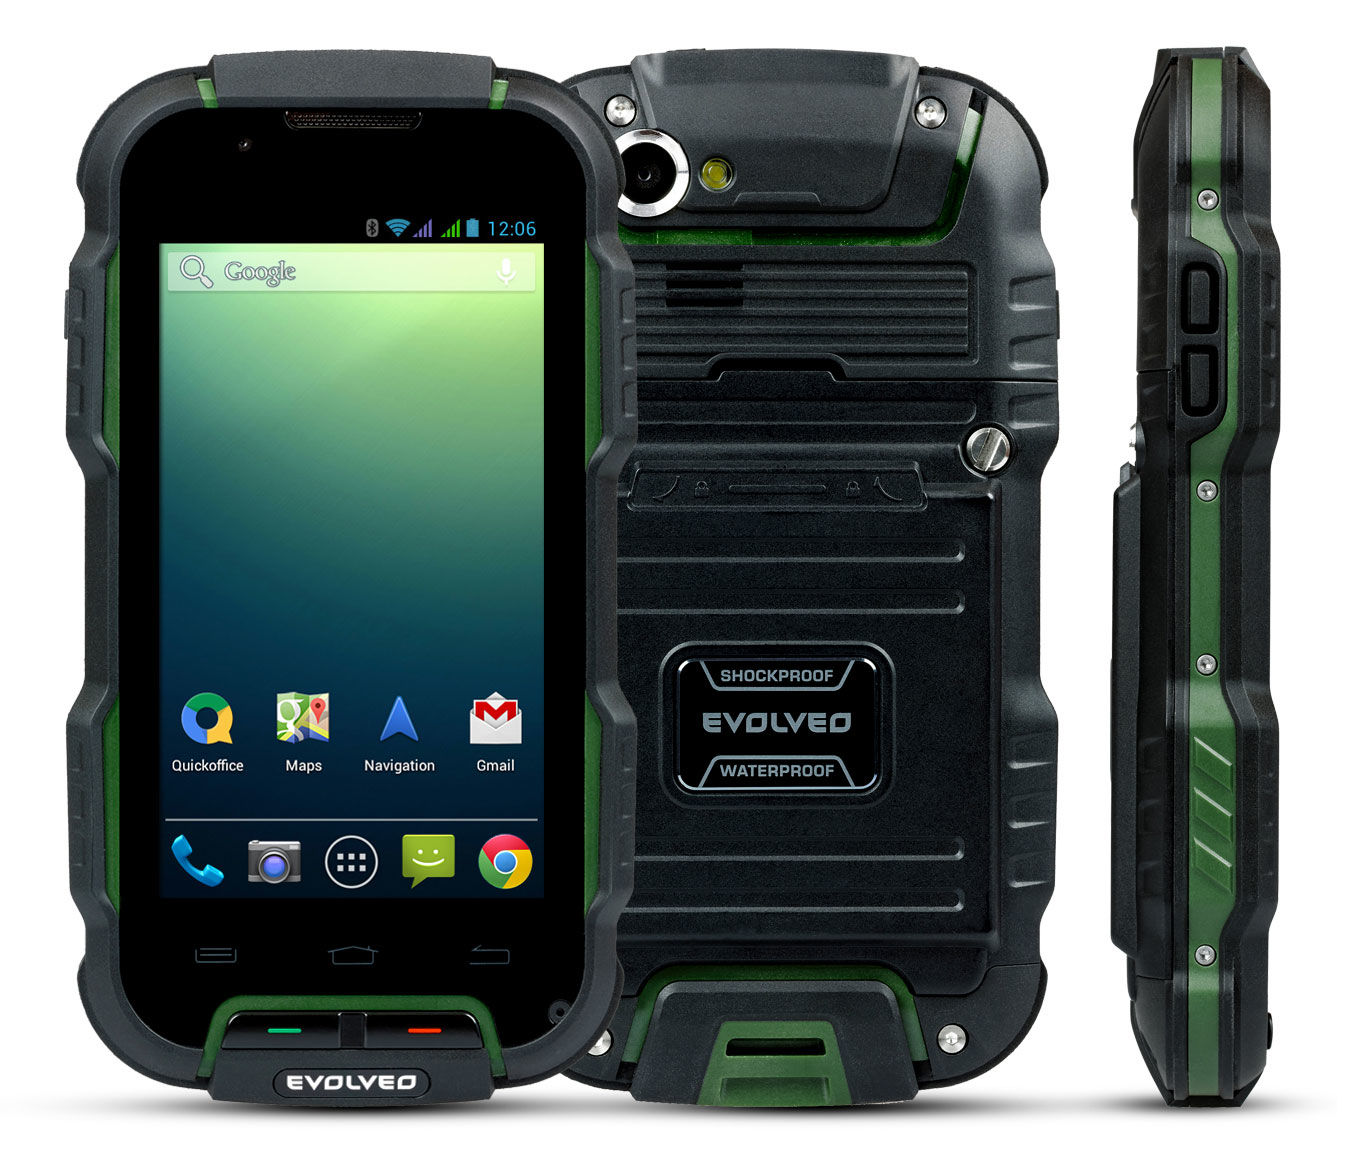 Evolveo Strongphone D2